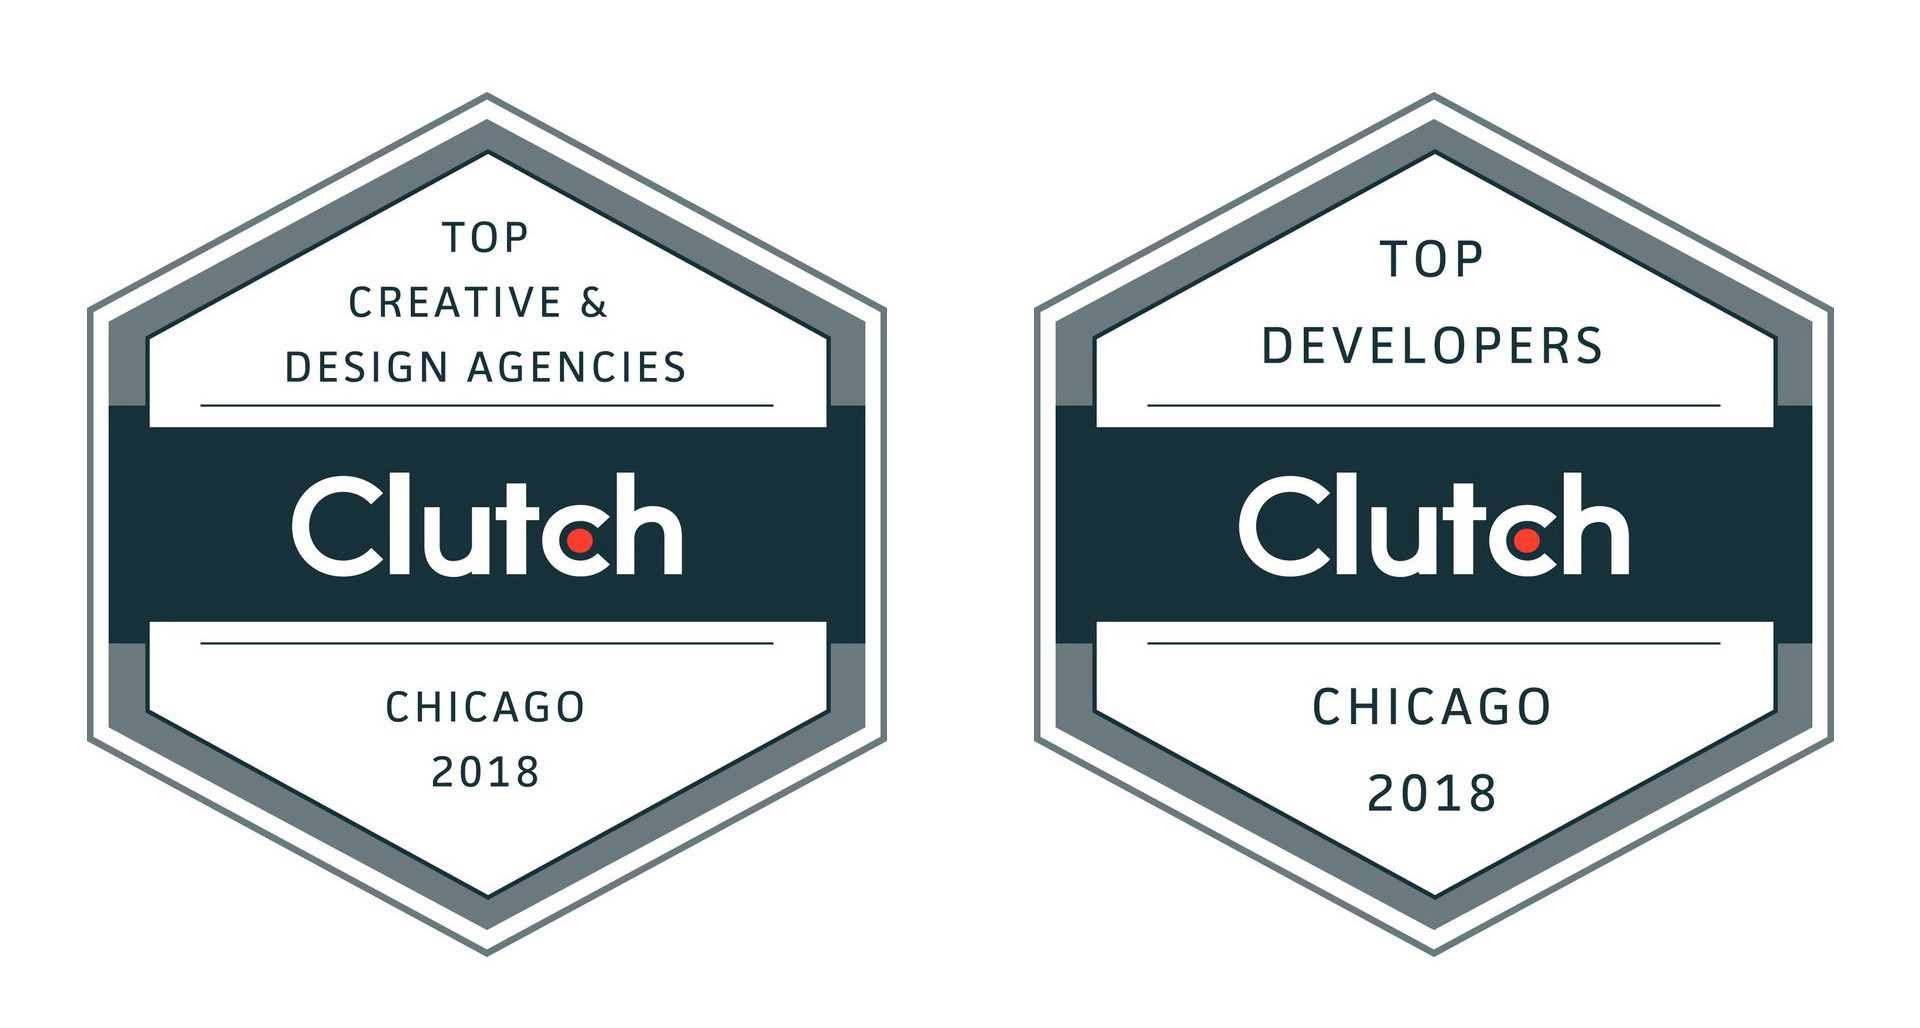 Clutch Top Design and Creative Agency Chicago 2018